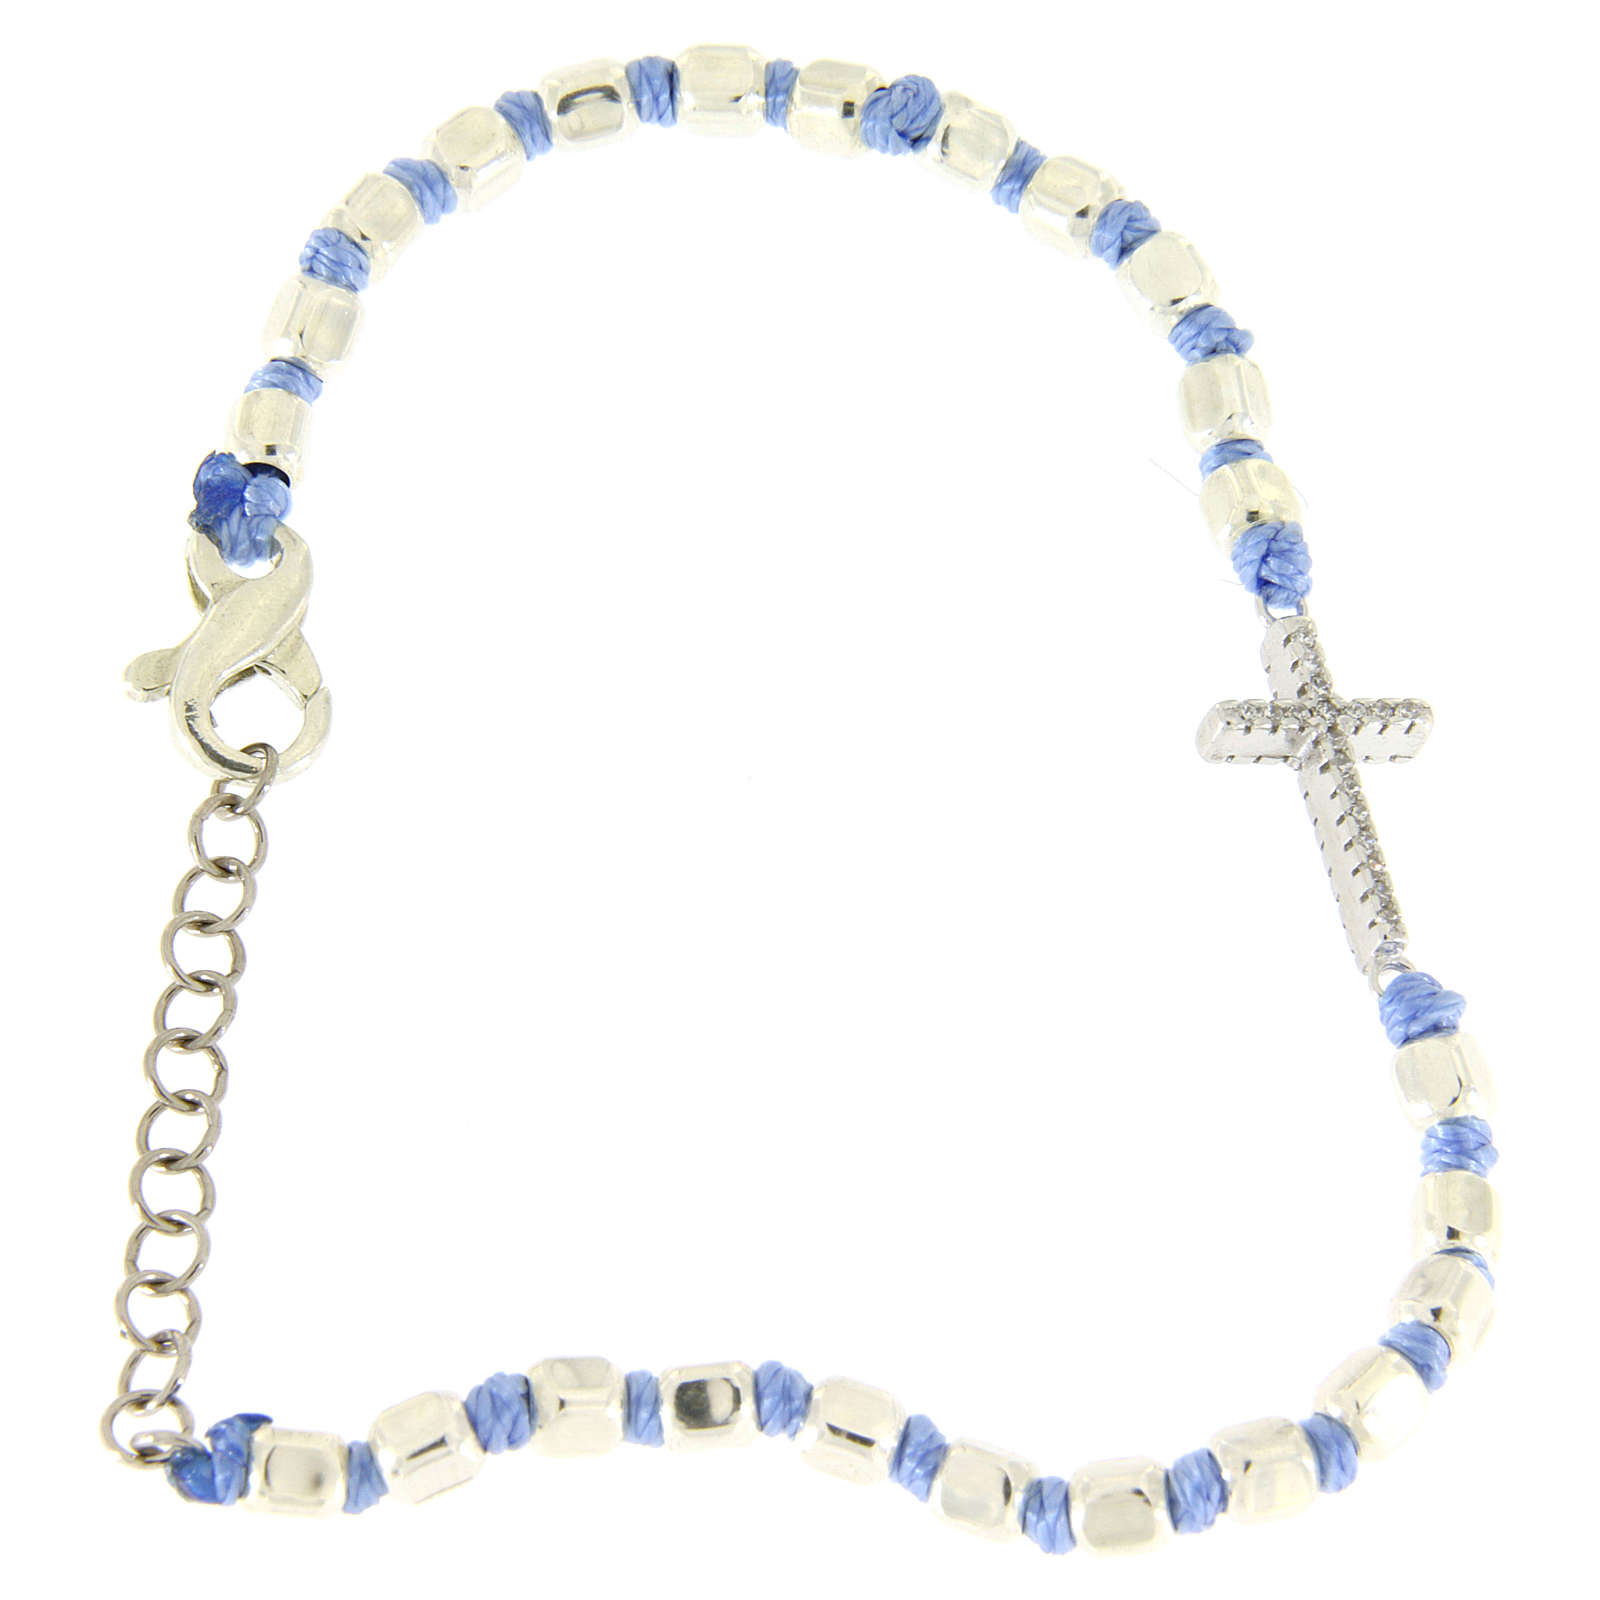 Bracelet with white zirconate cross, 2 mm cubic spheres and light blue knots 4